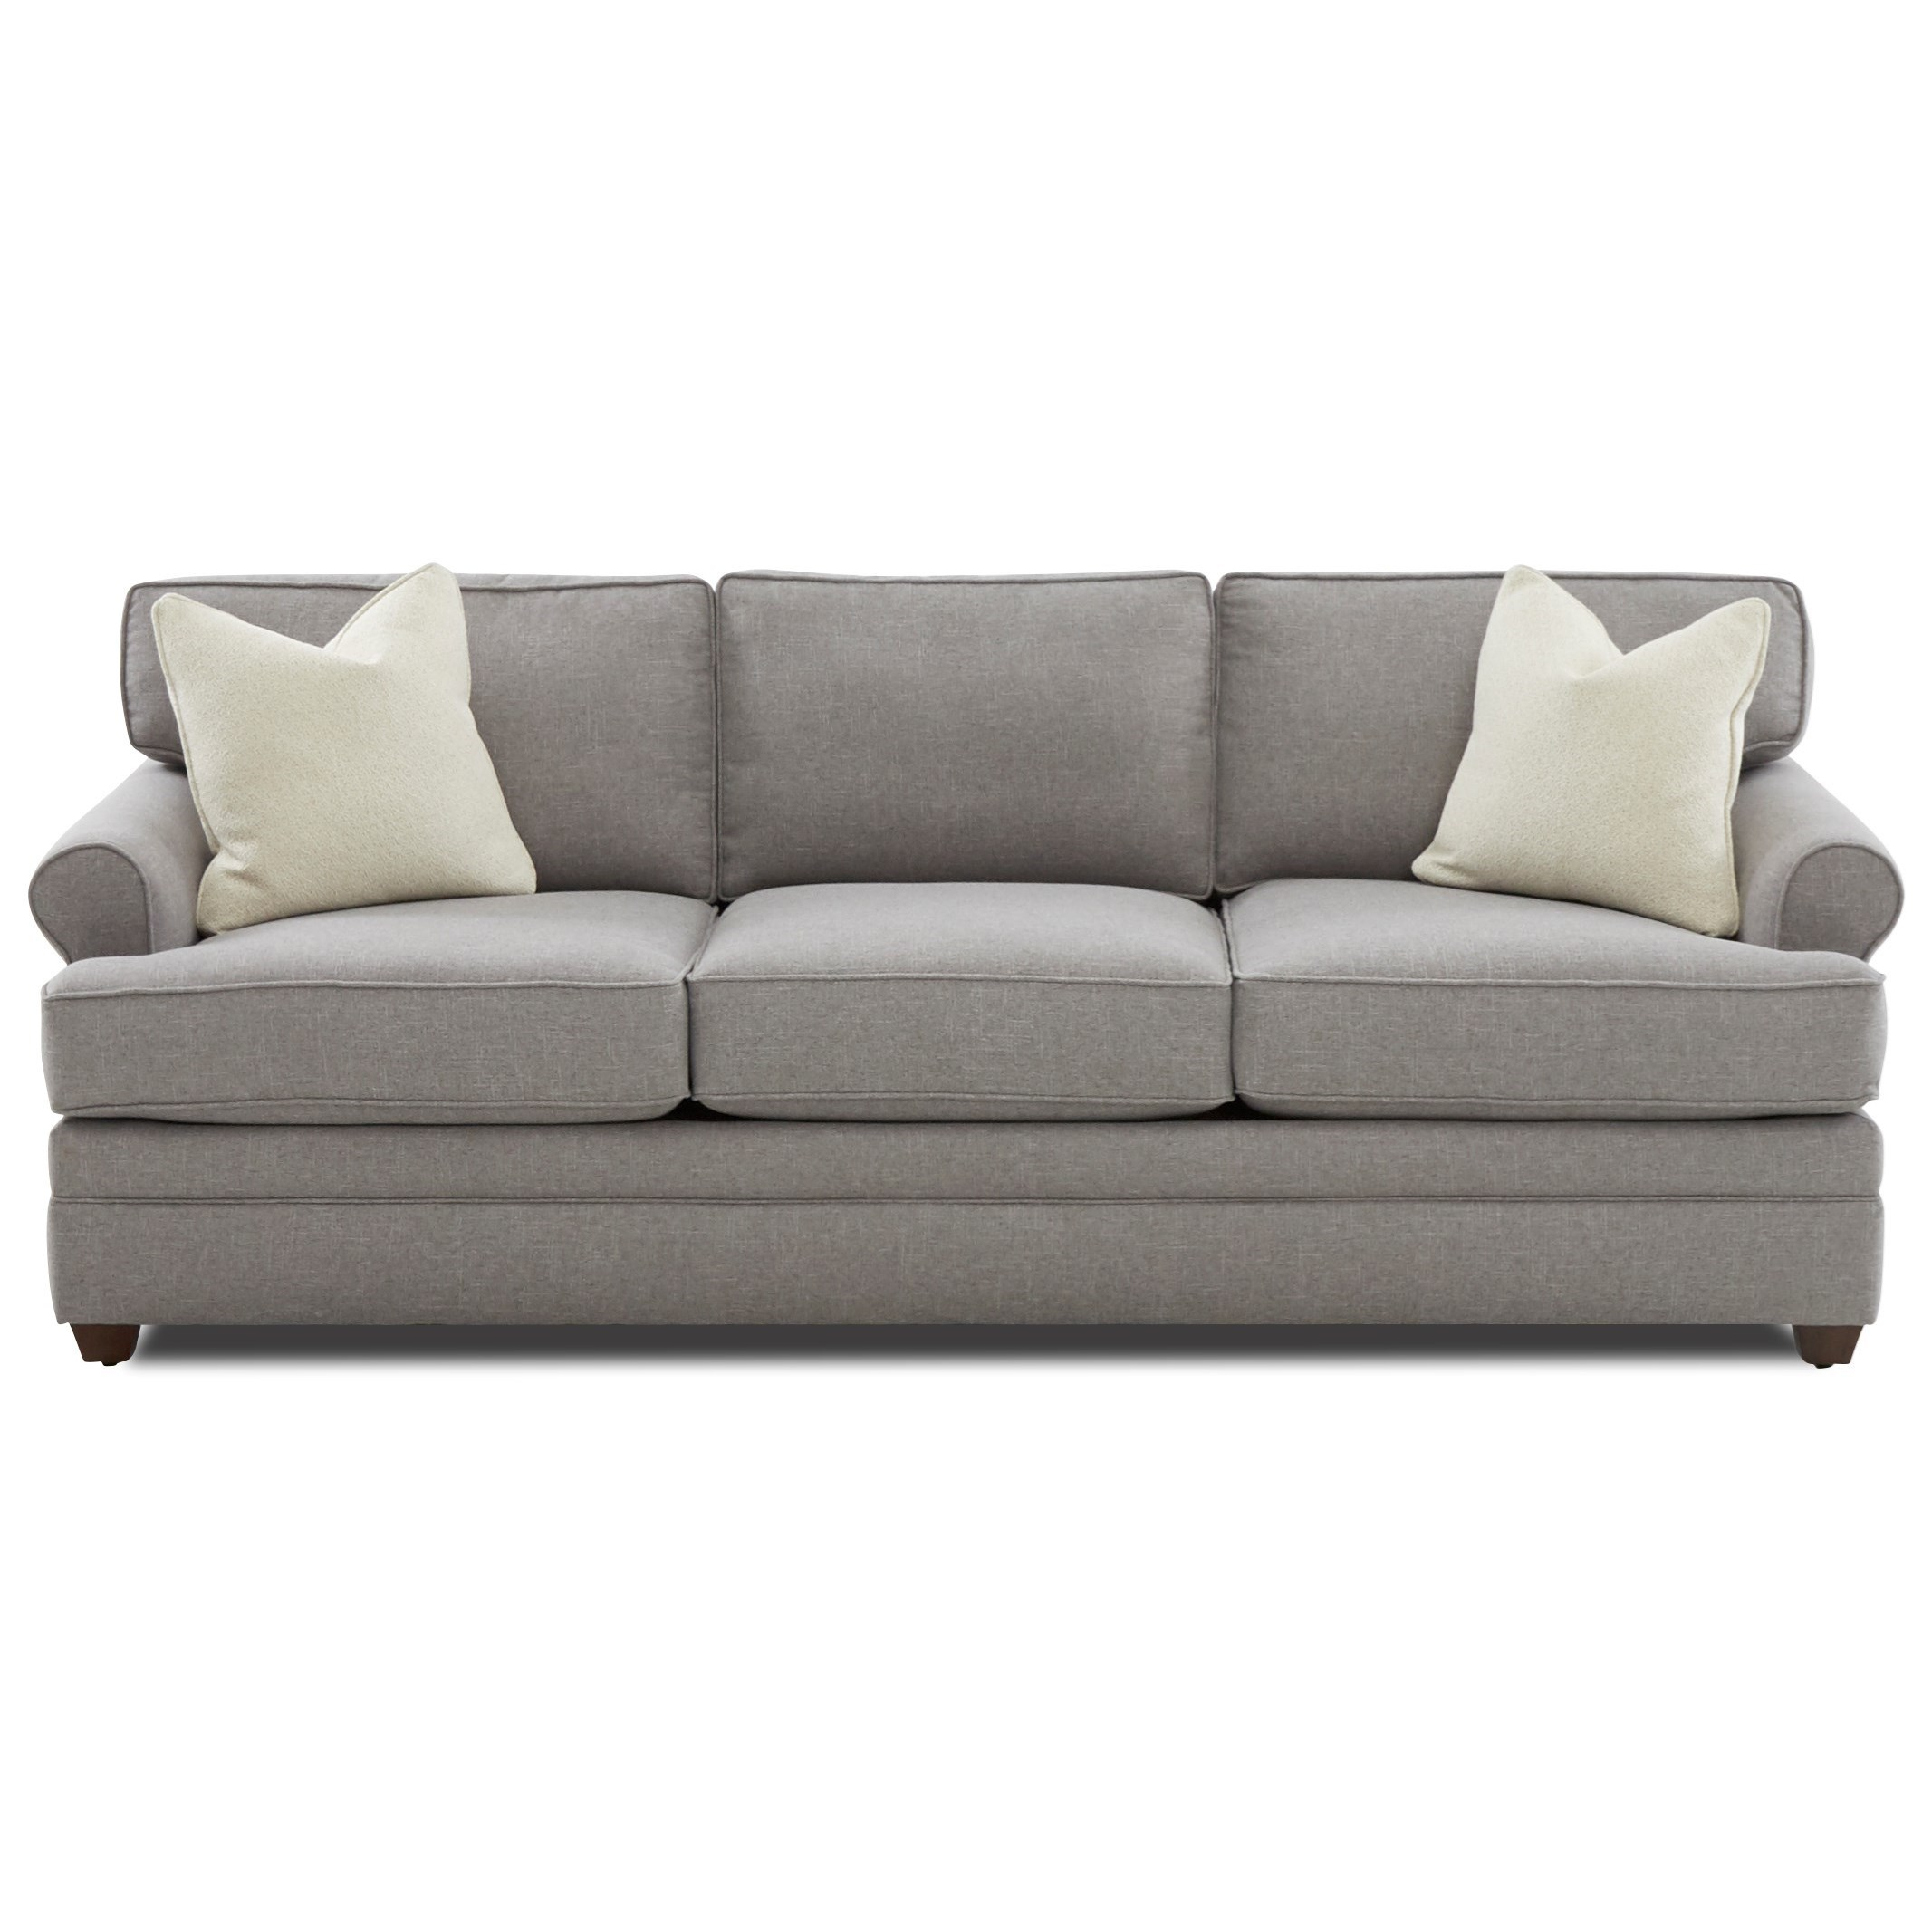 Casual Rolled Arm Sofa Sleeper with Dreamquest Mattress